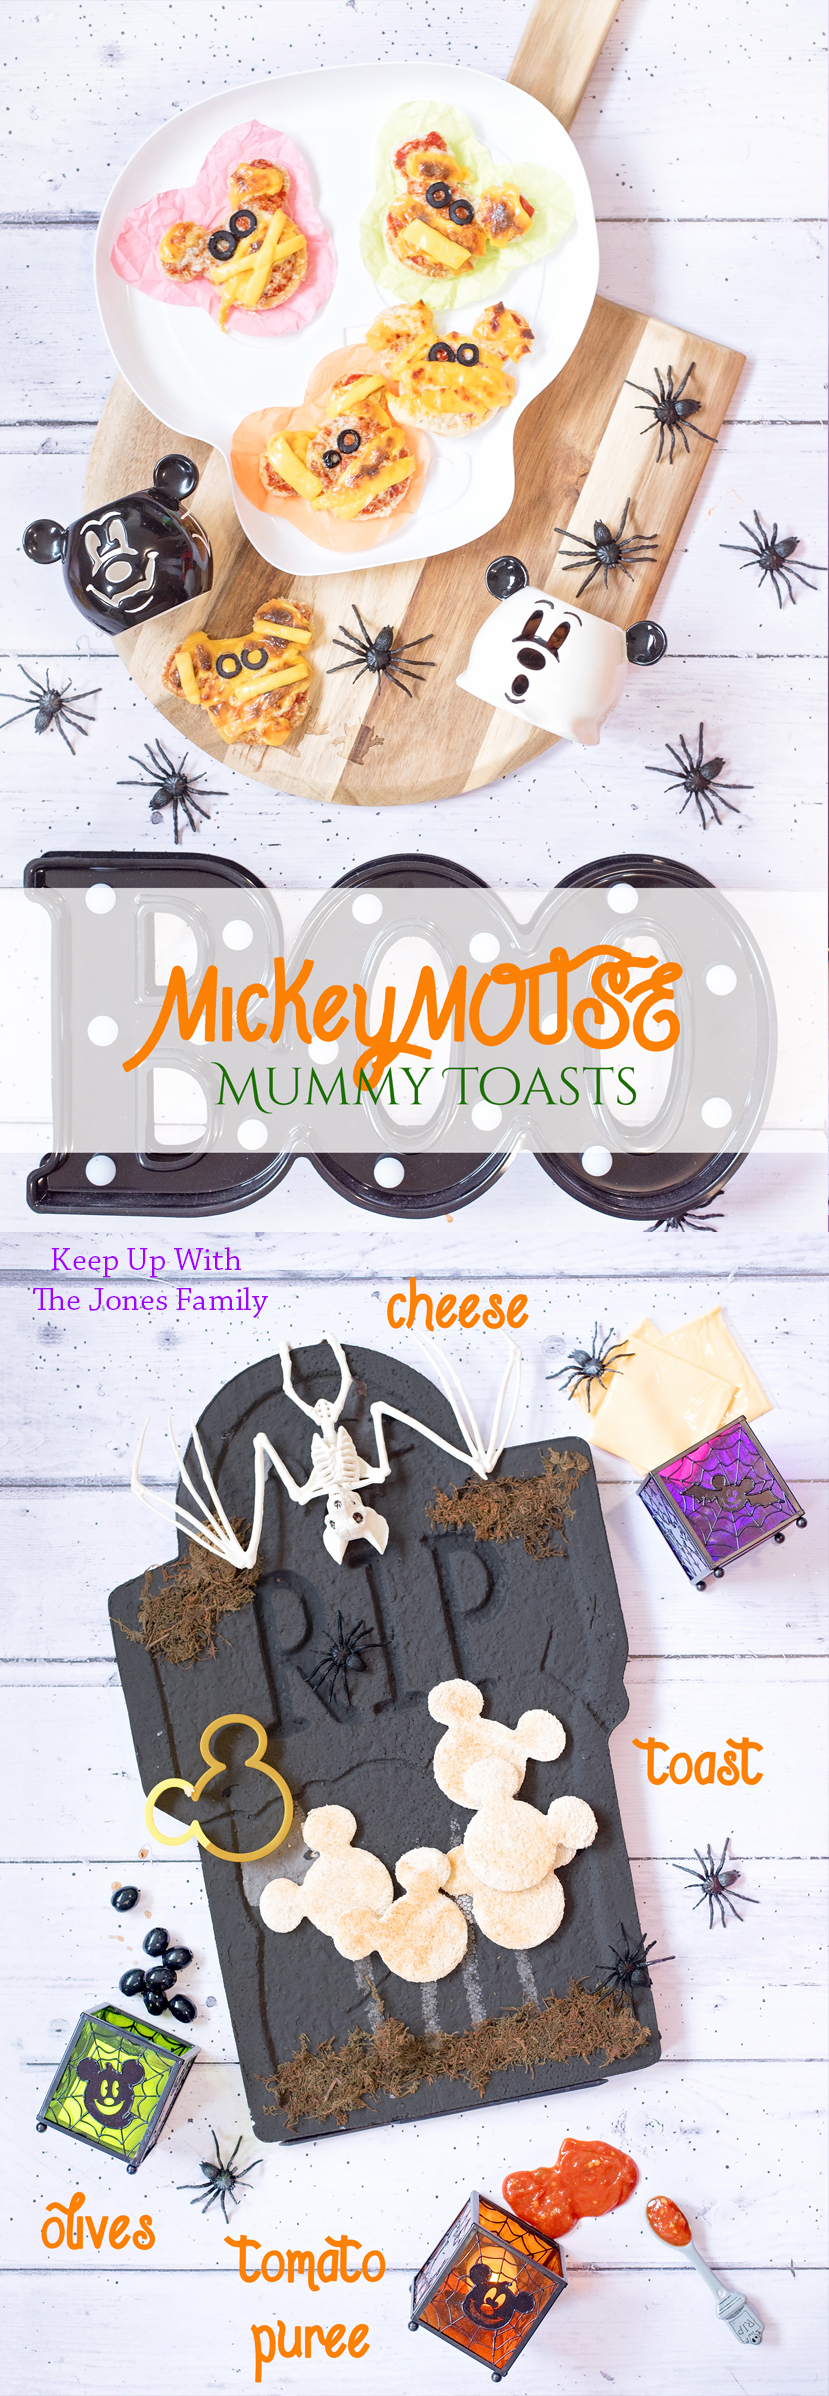 Disney Mickey Mouse Mummy Toast cheese tomato